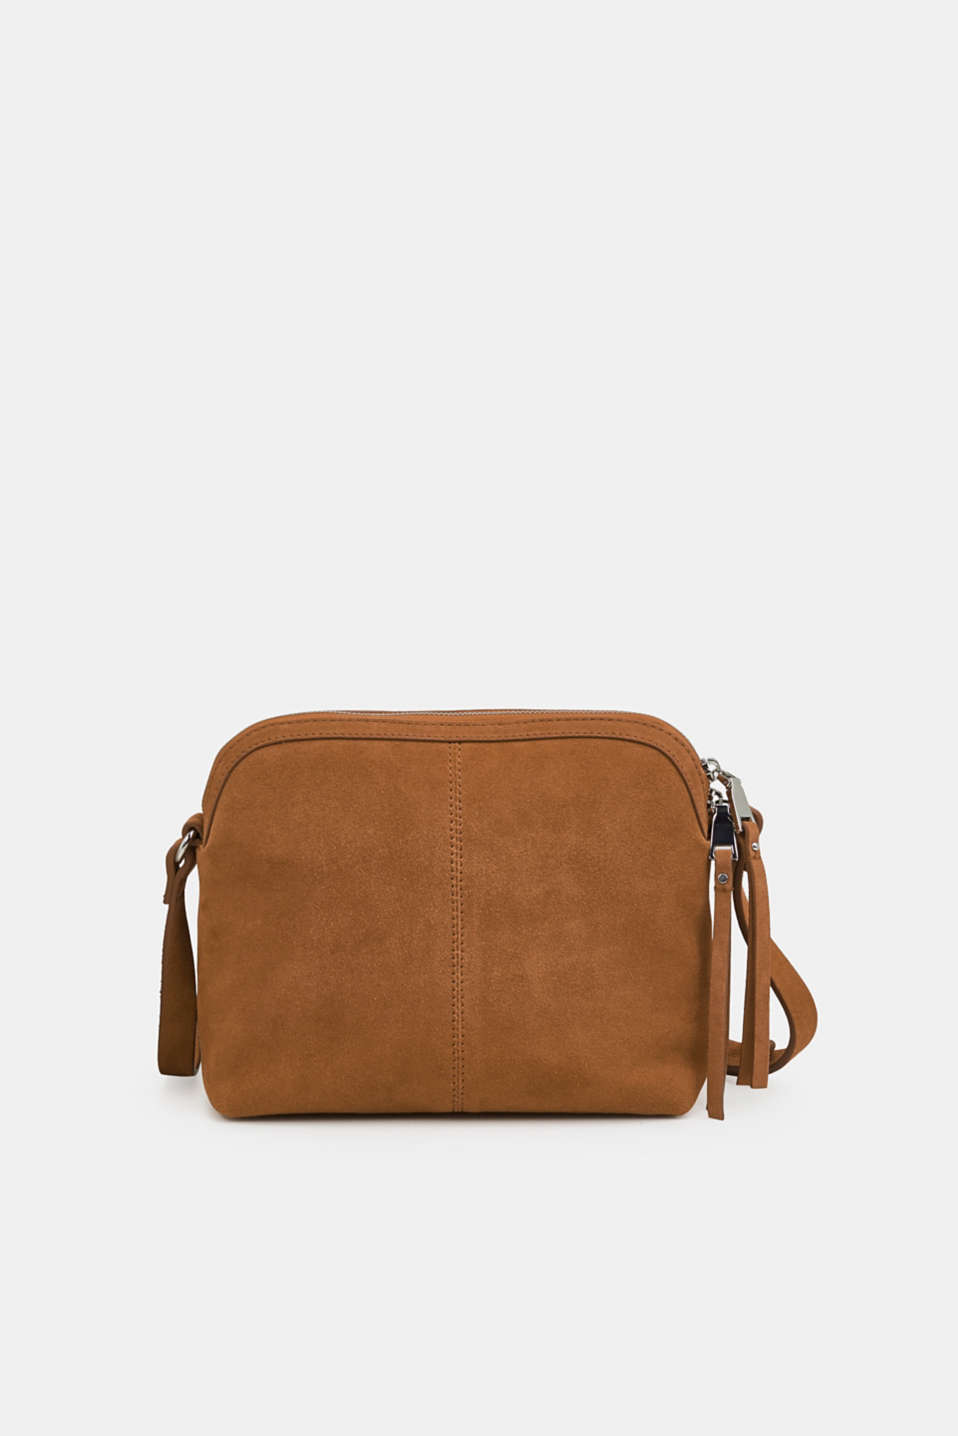 Suede shoulder bag, RUST BROWN, detail image number 0